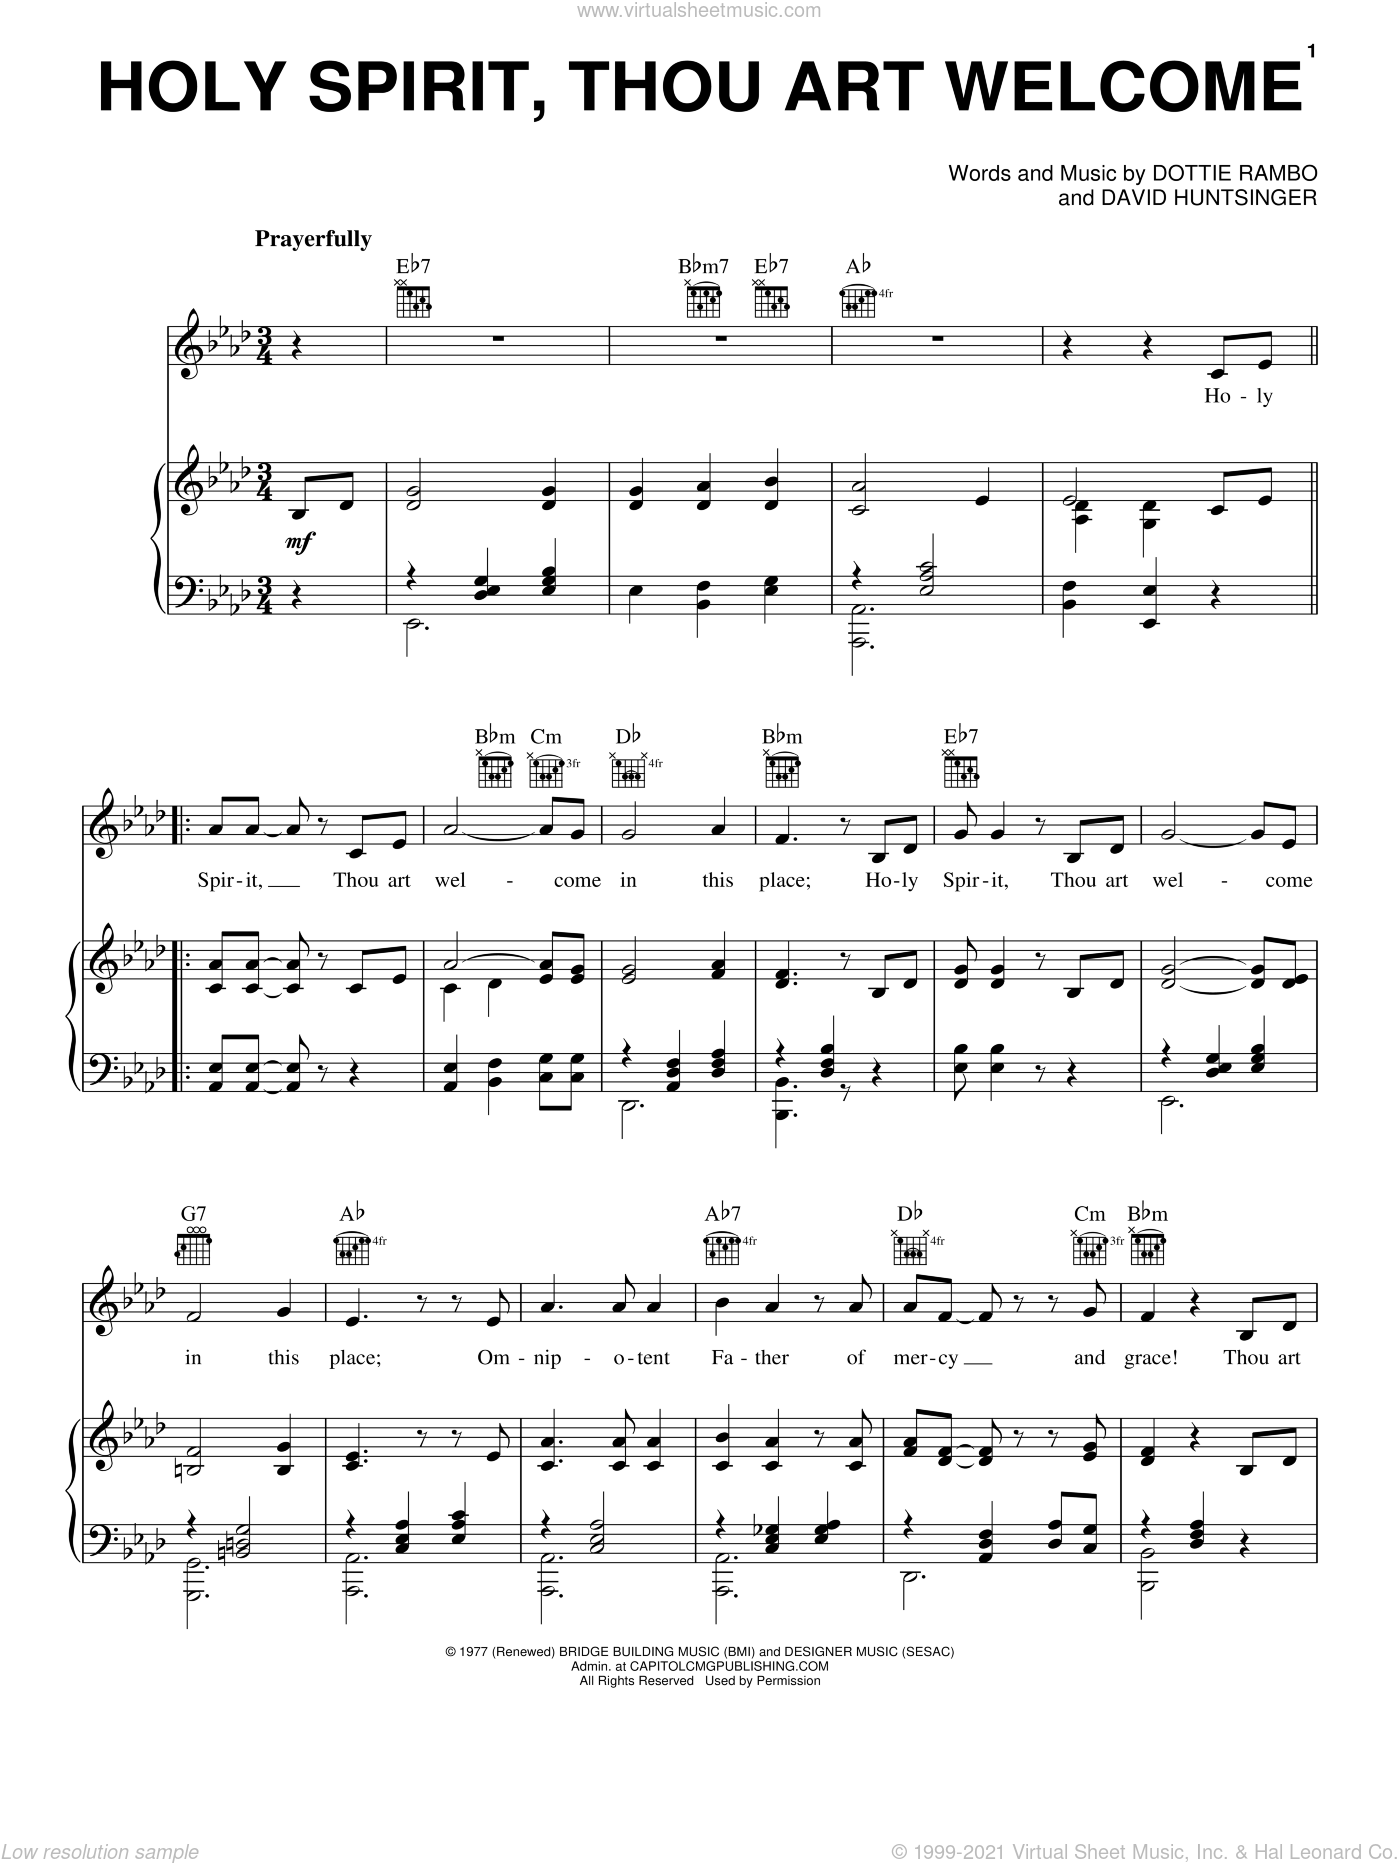 Holy Spirit, Thou Art Welcome sheet music for voice, piano or guitar by Dottie Rambo and David Huntsinger, intermediate skill level